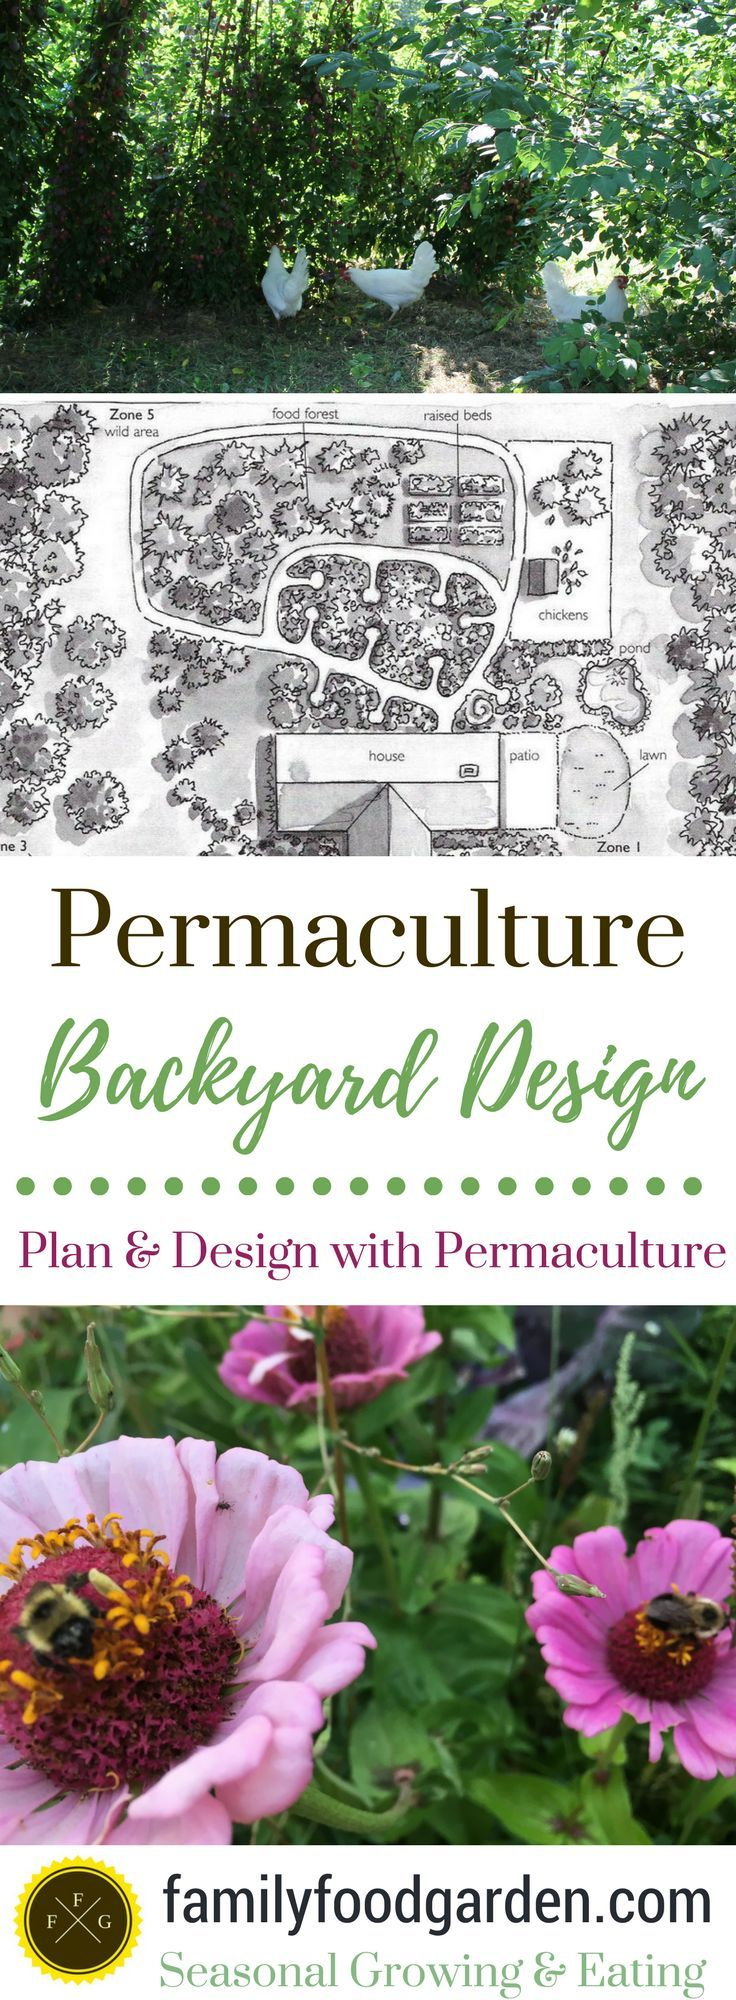 Home-scale Backyard Permaculture Design | Permaculture, Gardens and ...